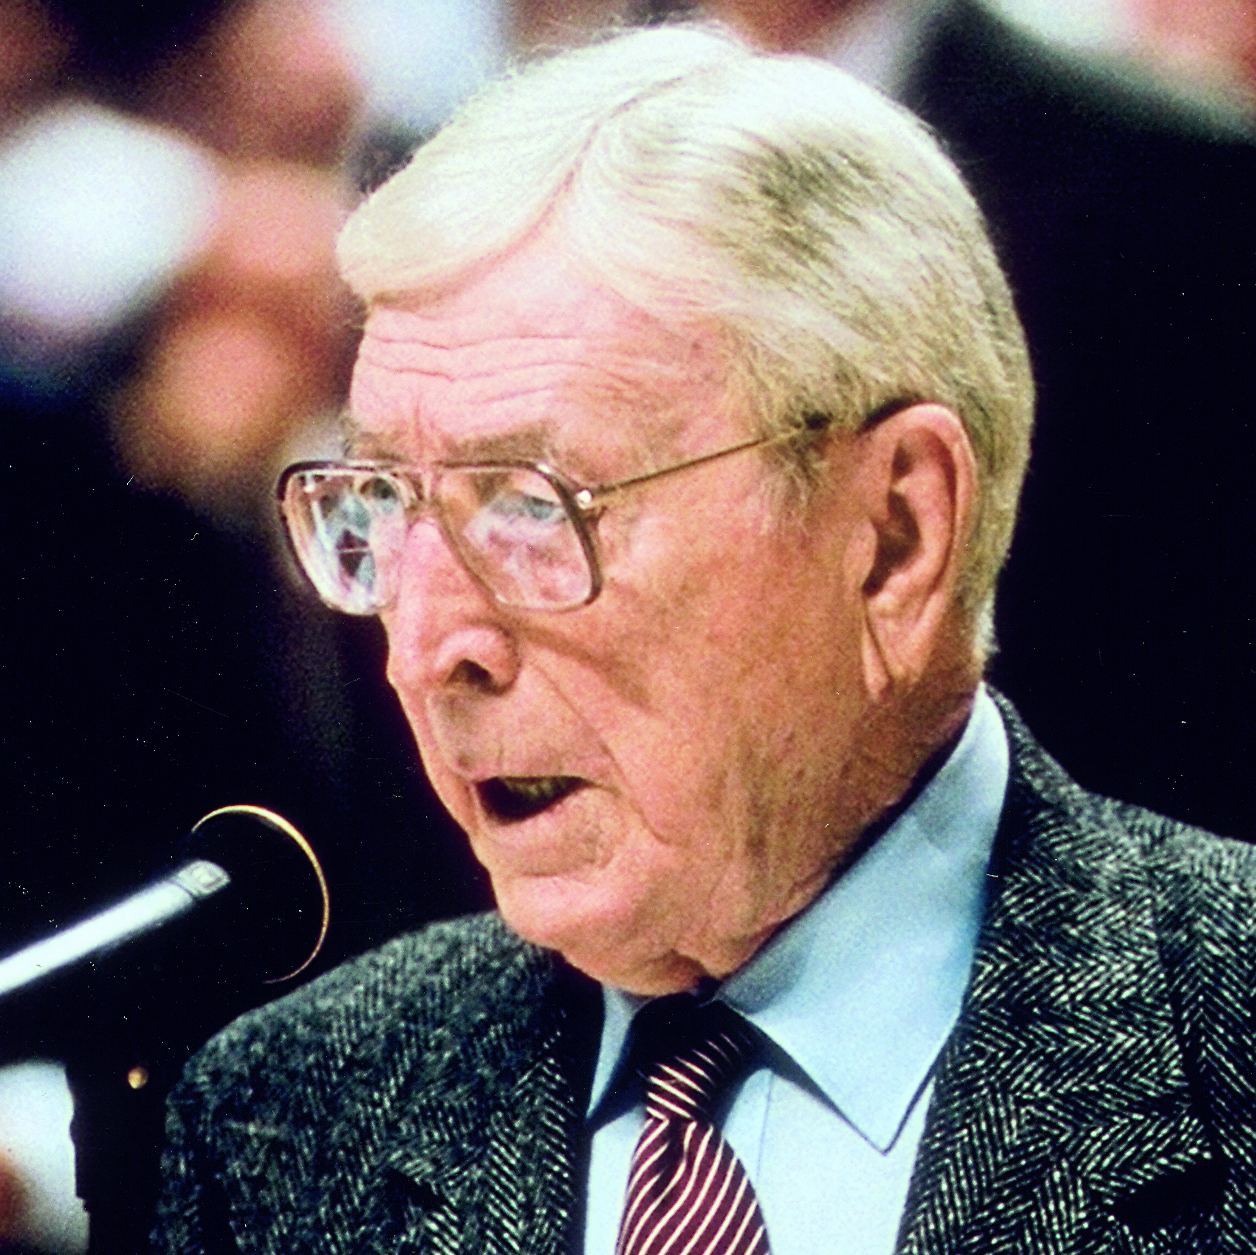 2000 - John Wooden - Exhibiting excellence in sports, Wooden is the only man to be in the Naismith Memorial Basketball Hall of Fame as a player and a coach. His legacy results from his unparalleled championship-winning record along with his brilliance as a tactician and teacher.